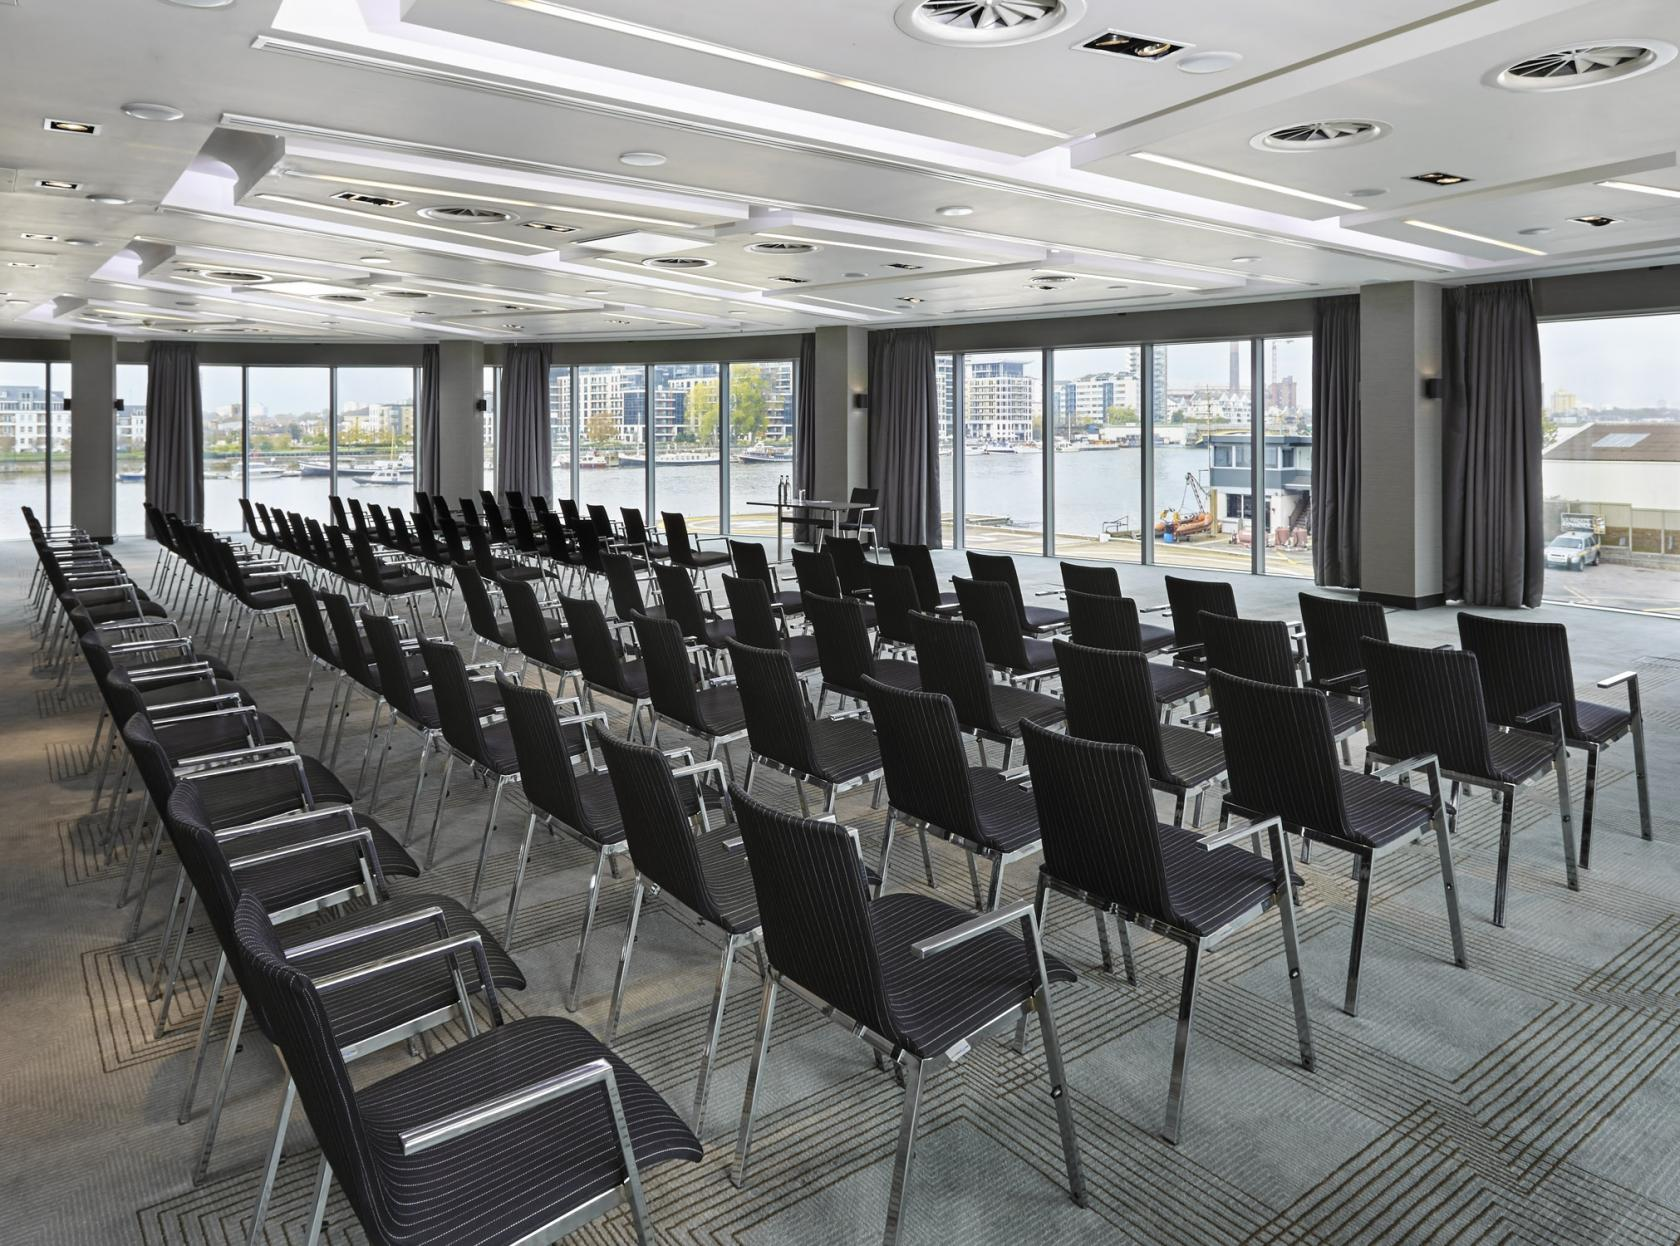 The Foxtrot is ideal for conferences, team meetings and away days.